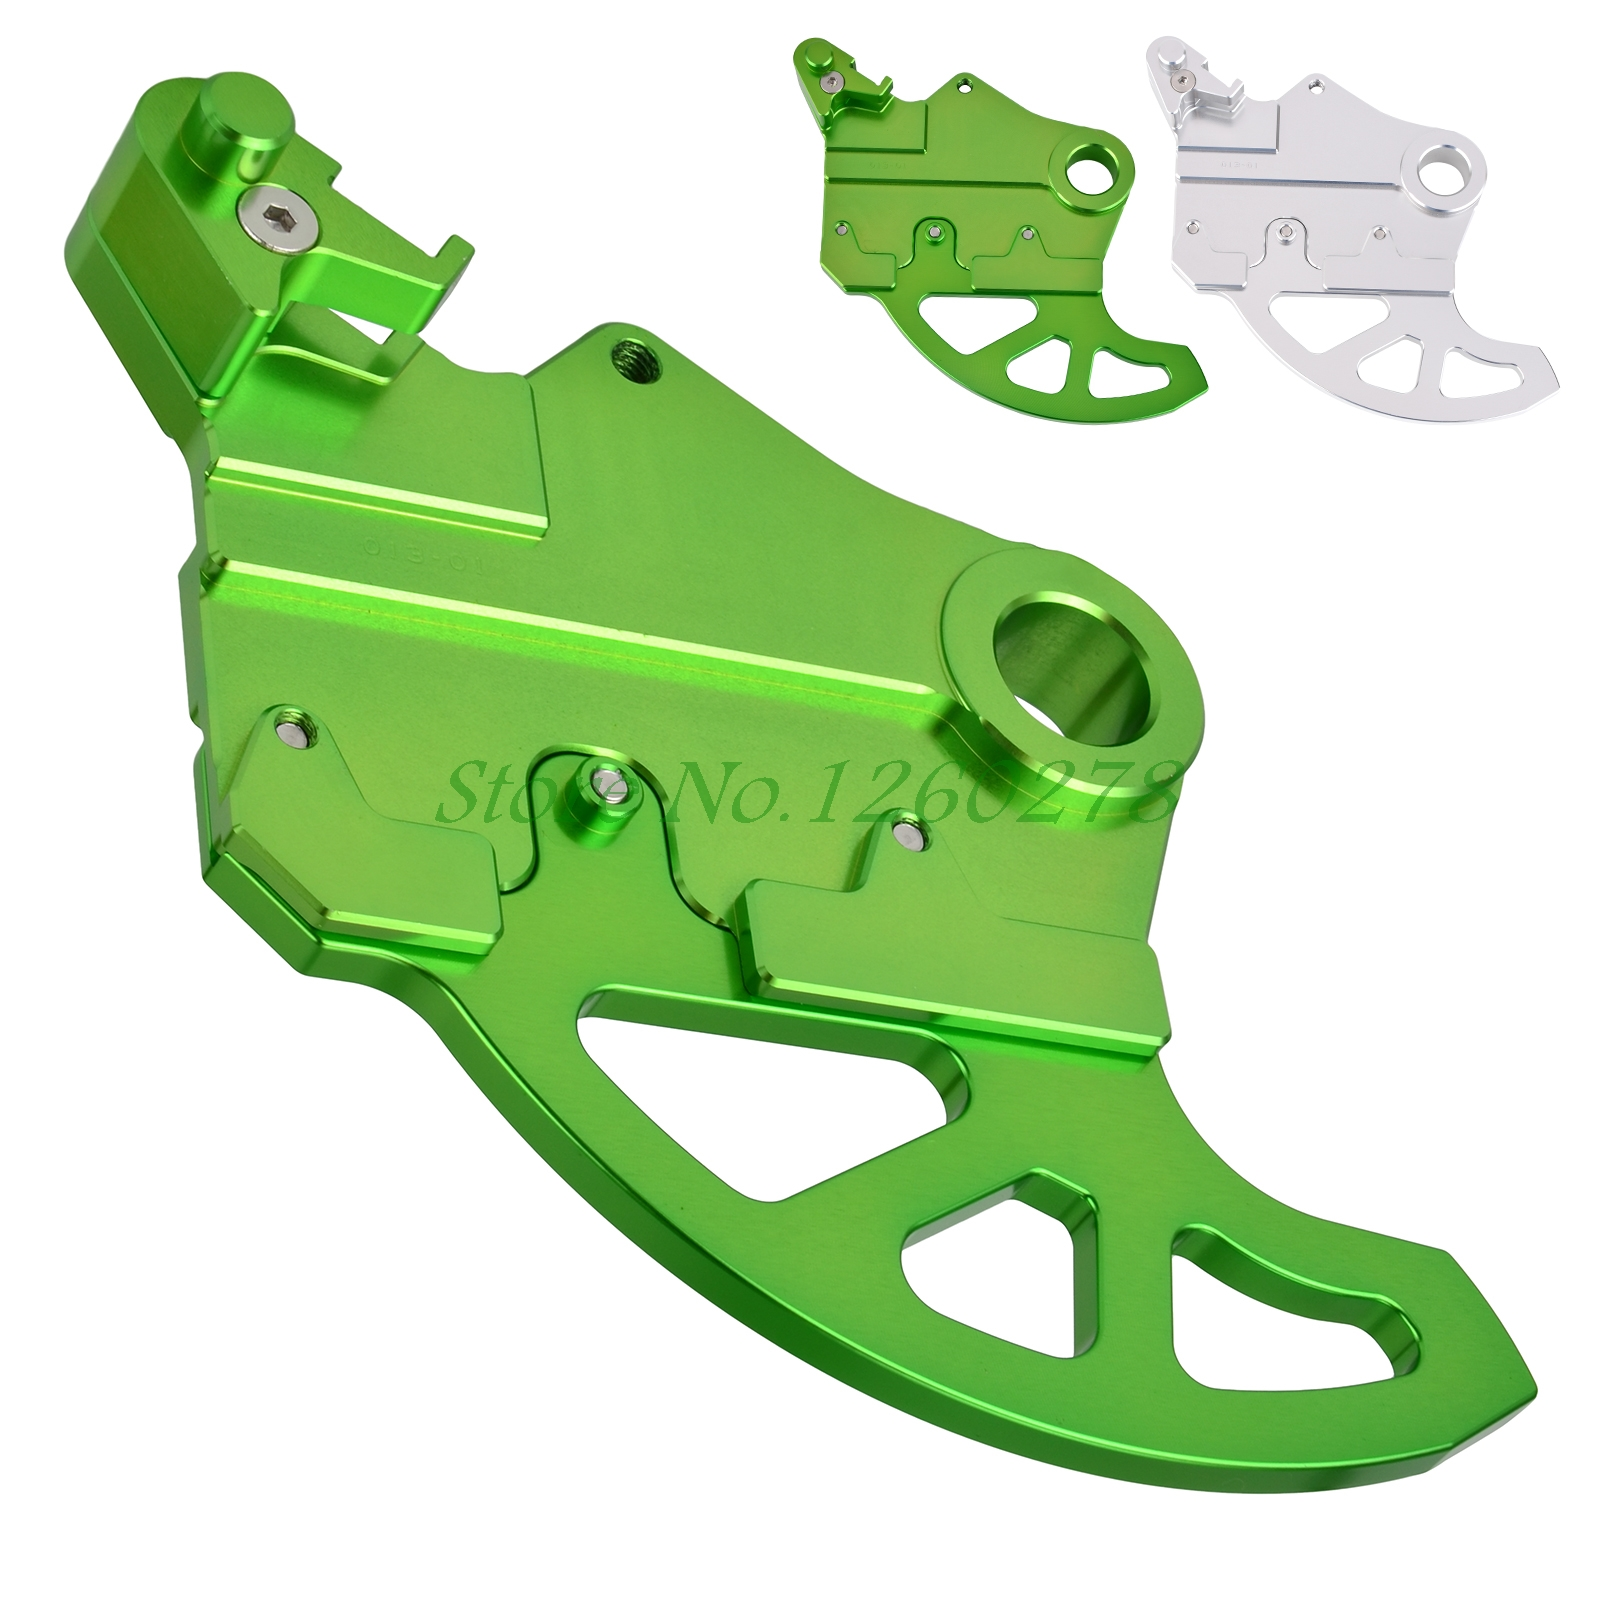 NICECNC Rear Brake Disc Guard Protector For Kawasaki KLX450R 2008 2009 2010 2012 KX250F 2004-2016 KX450F 2006-2016